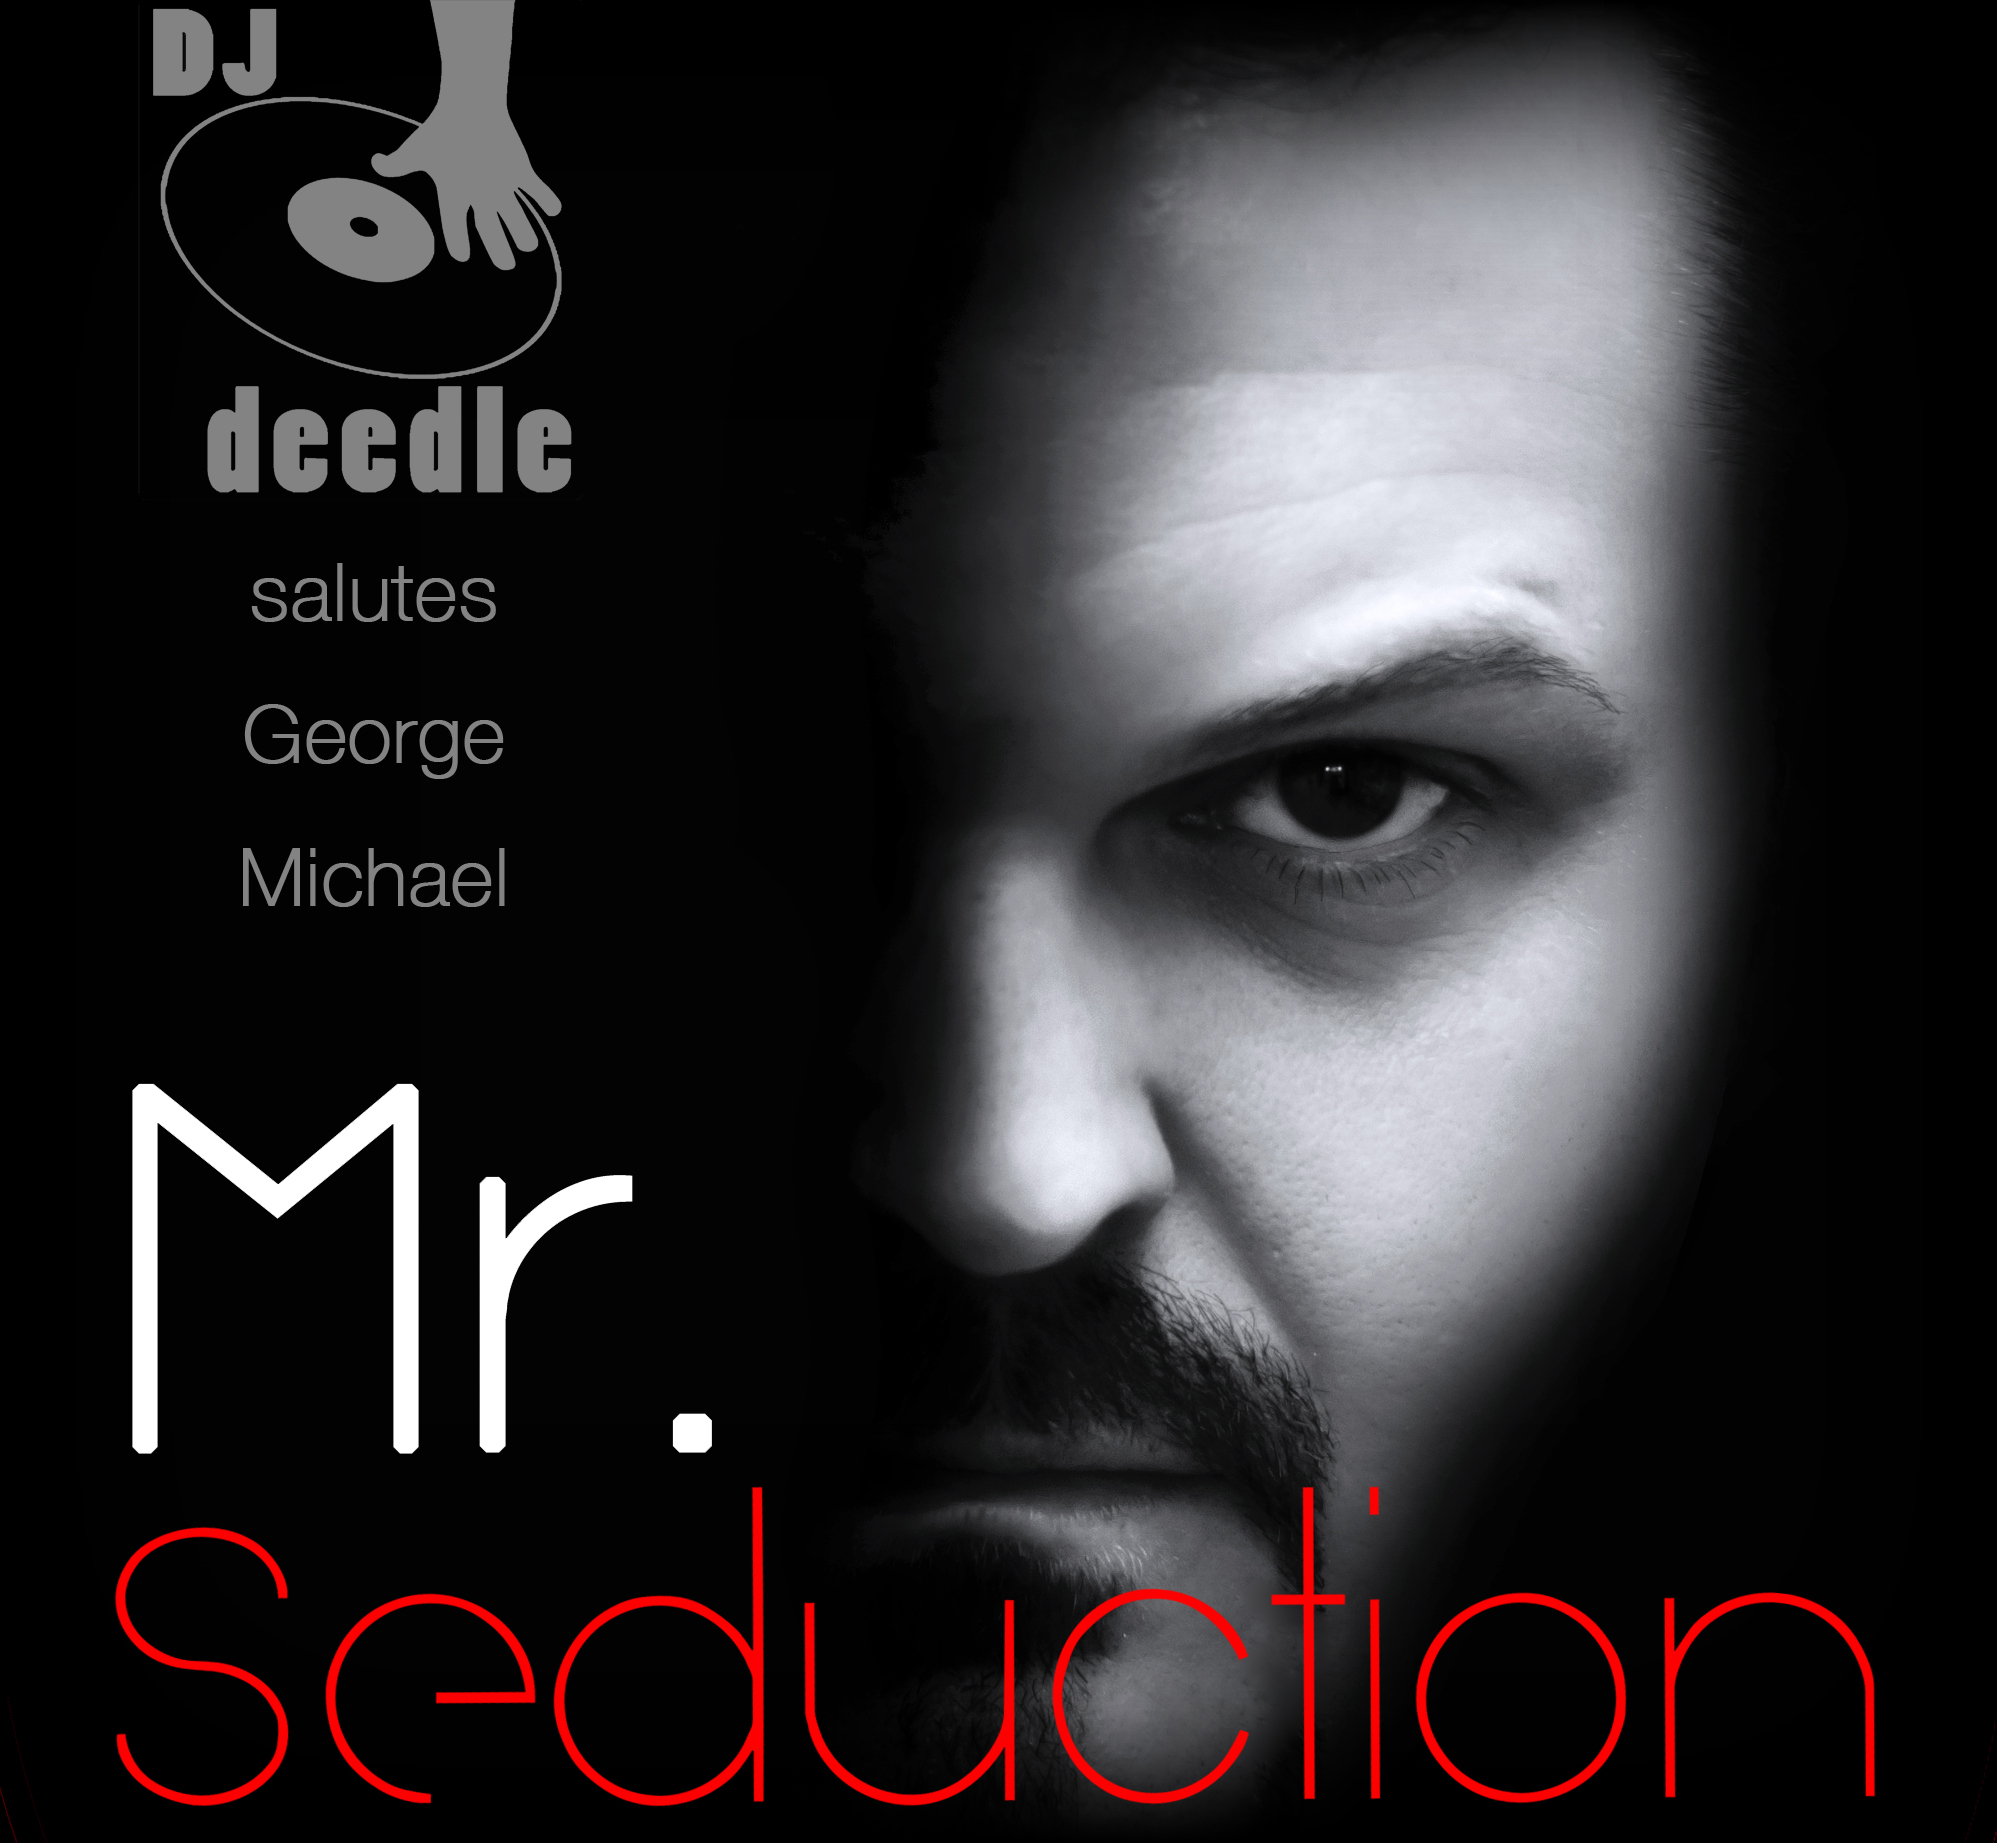 Mr. Seduction art